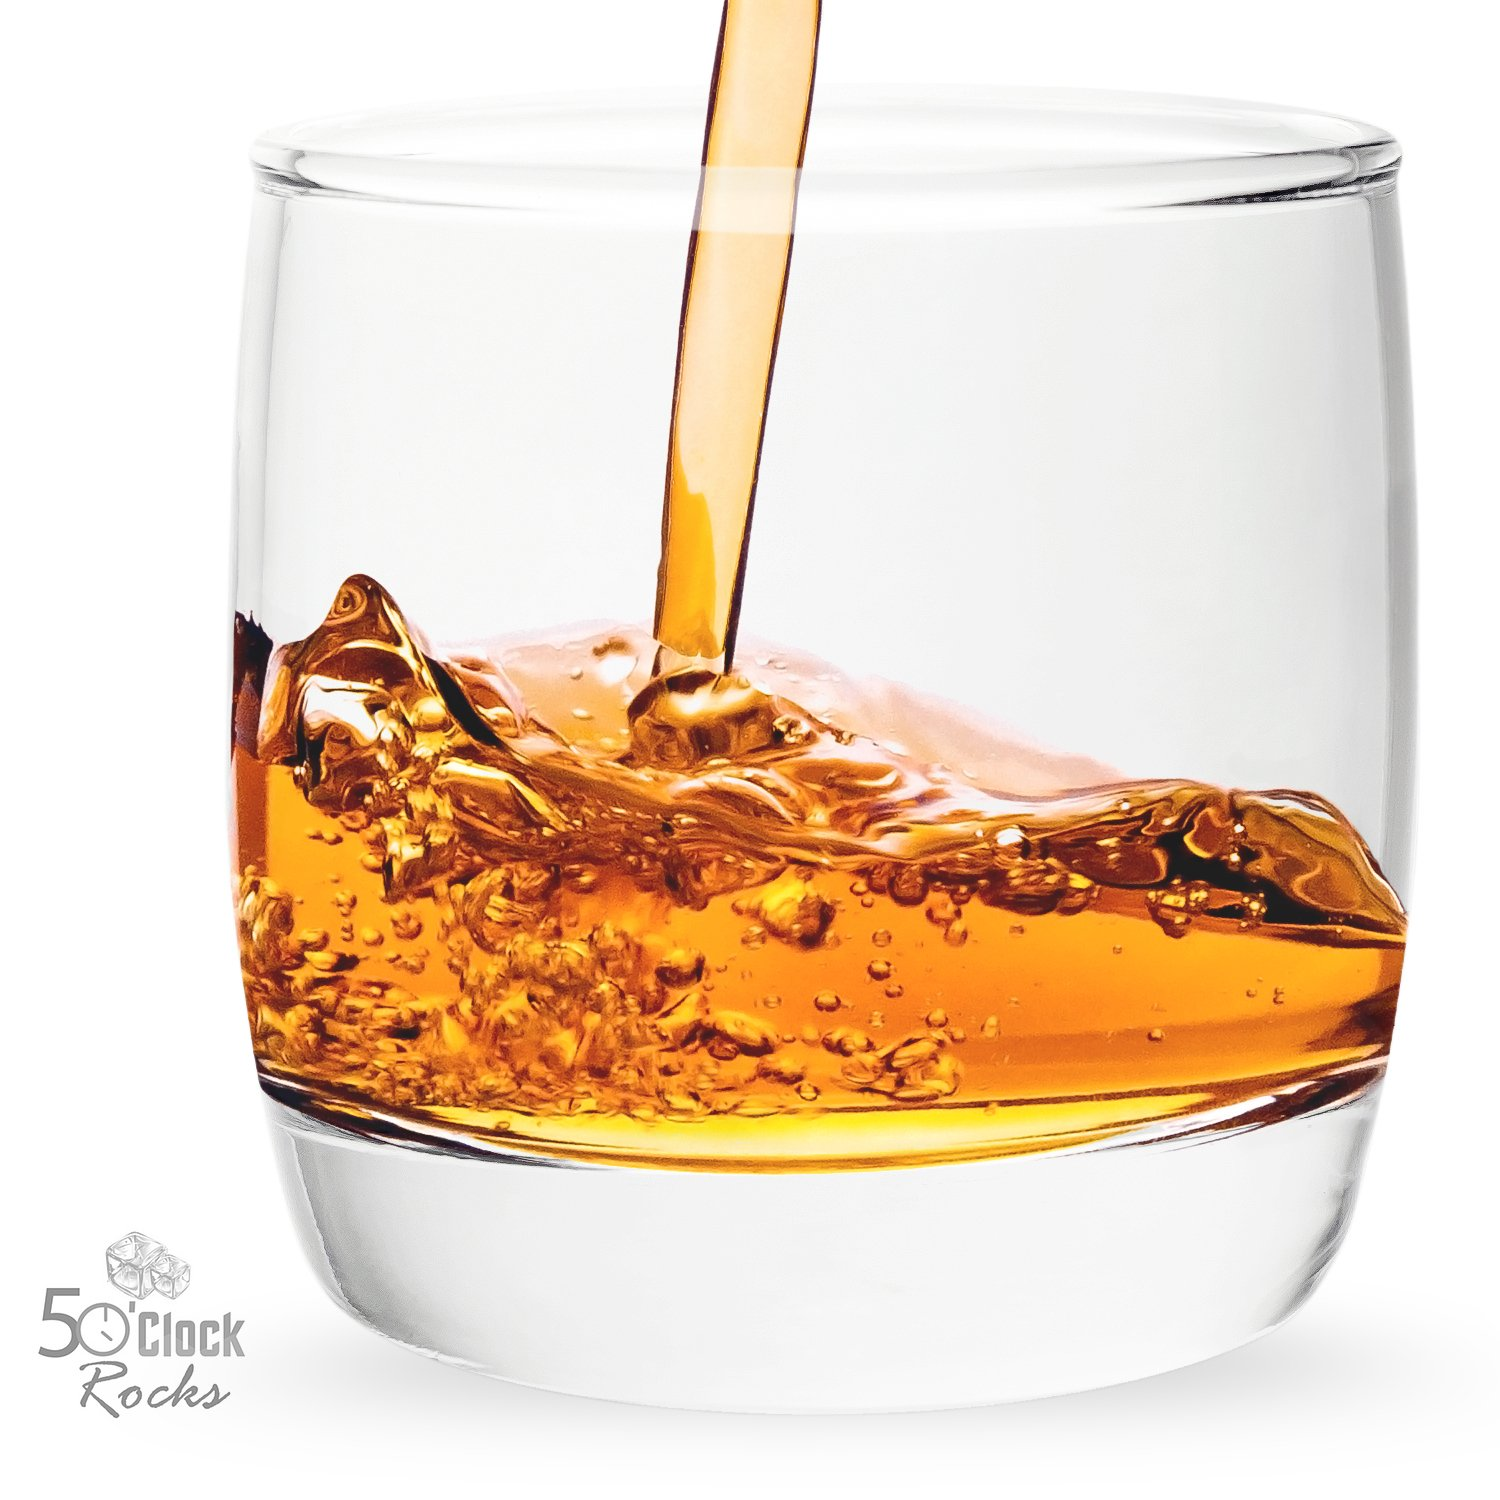 5 O'Clock Rocks 6.5-Ounce Scotch and Whiskey Glasses with FREE Mixologist Recipe Book (Set of 2). Great Gift for Dad!